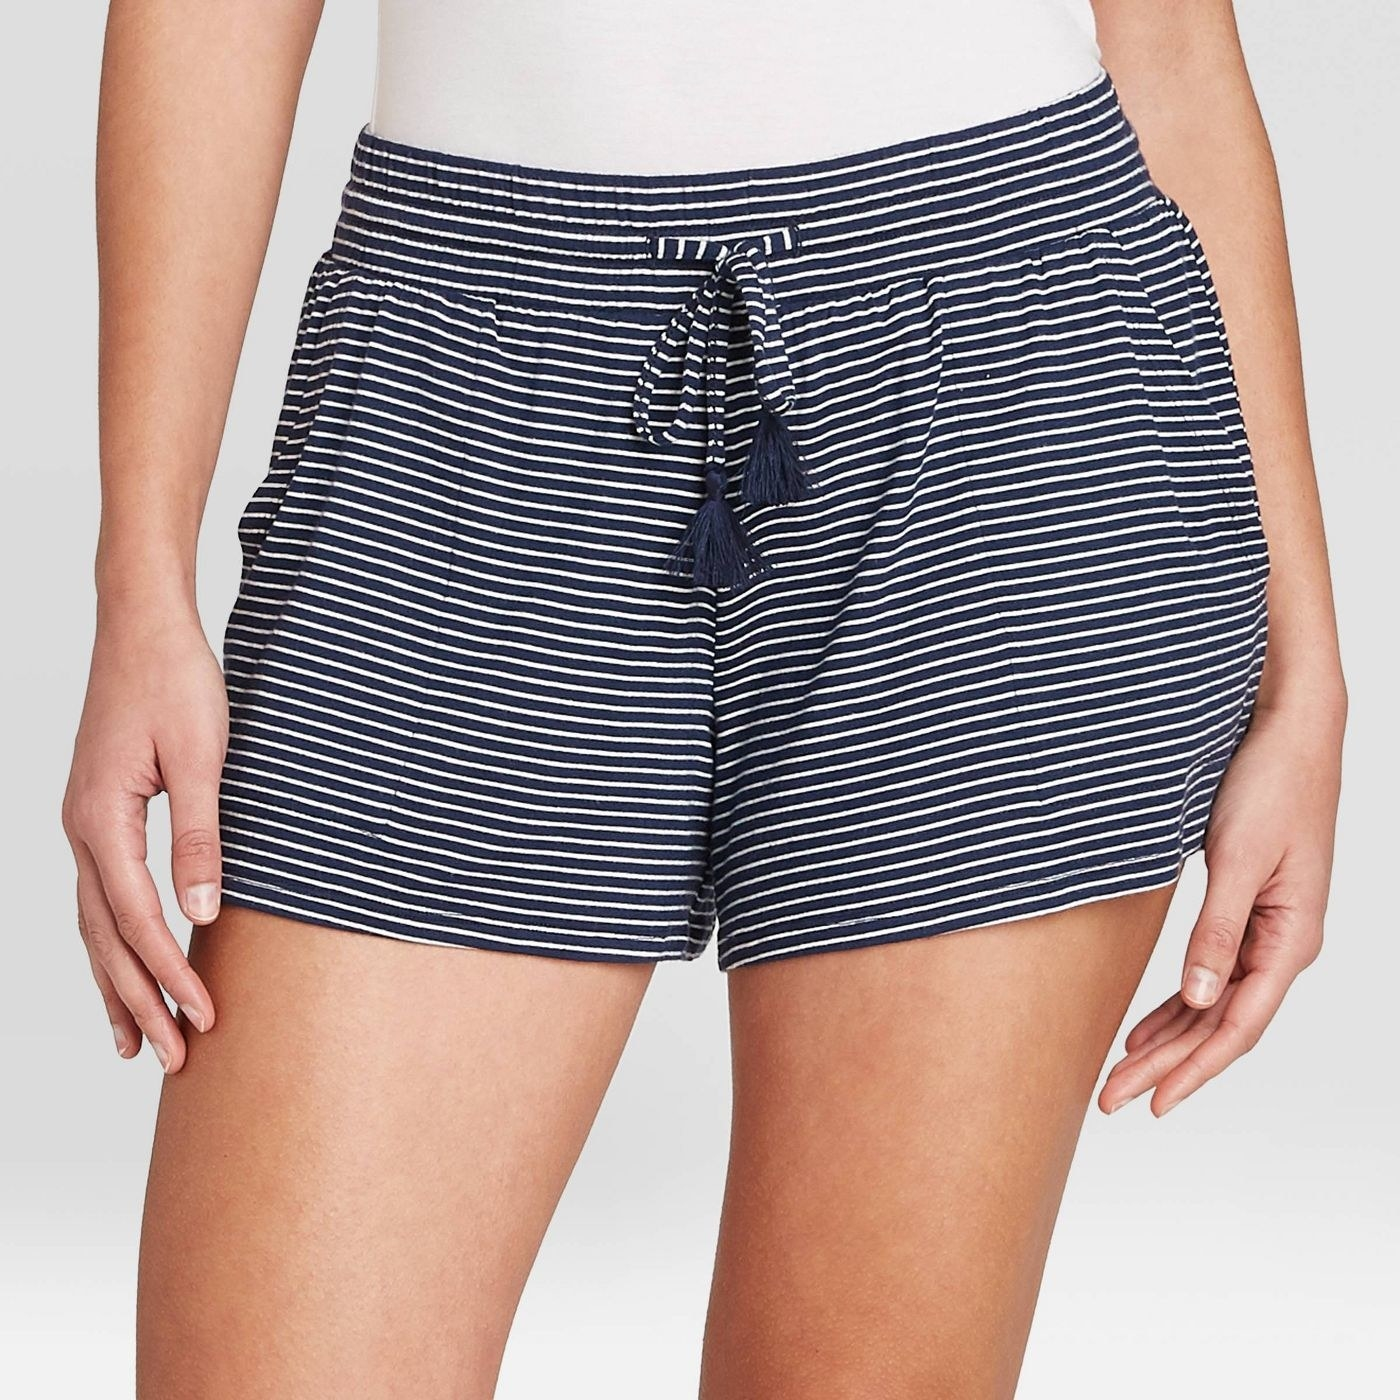 model wearing navy and white striped shorts